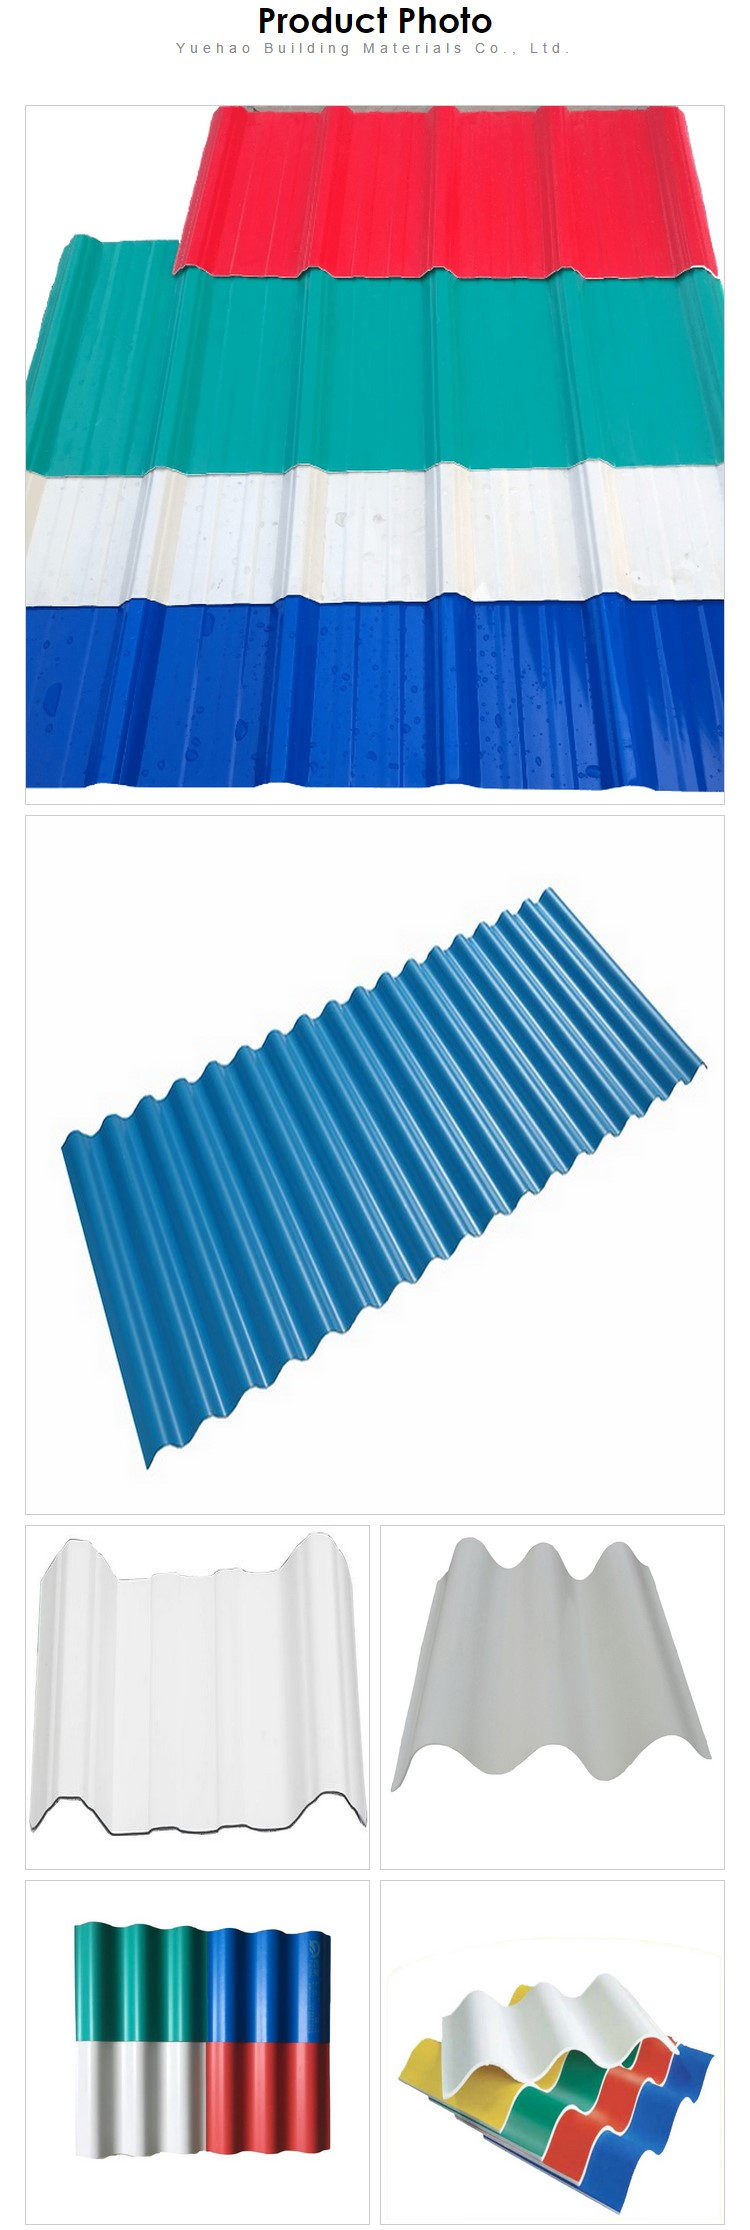 Yuehao plastic roof tiles wholesaler widely used PVC recycled plastic roof tiles bulk production for farm land-4